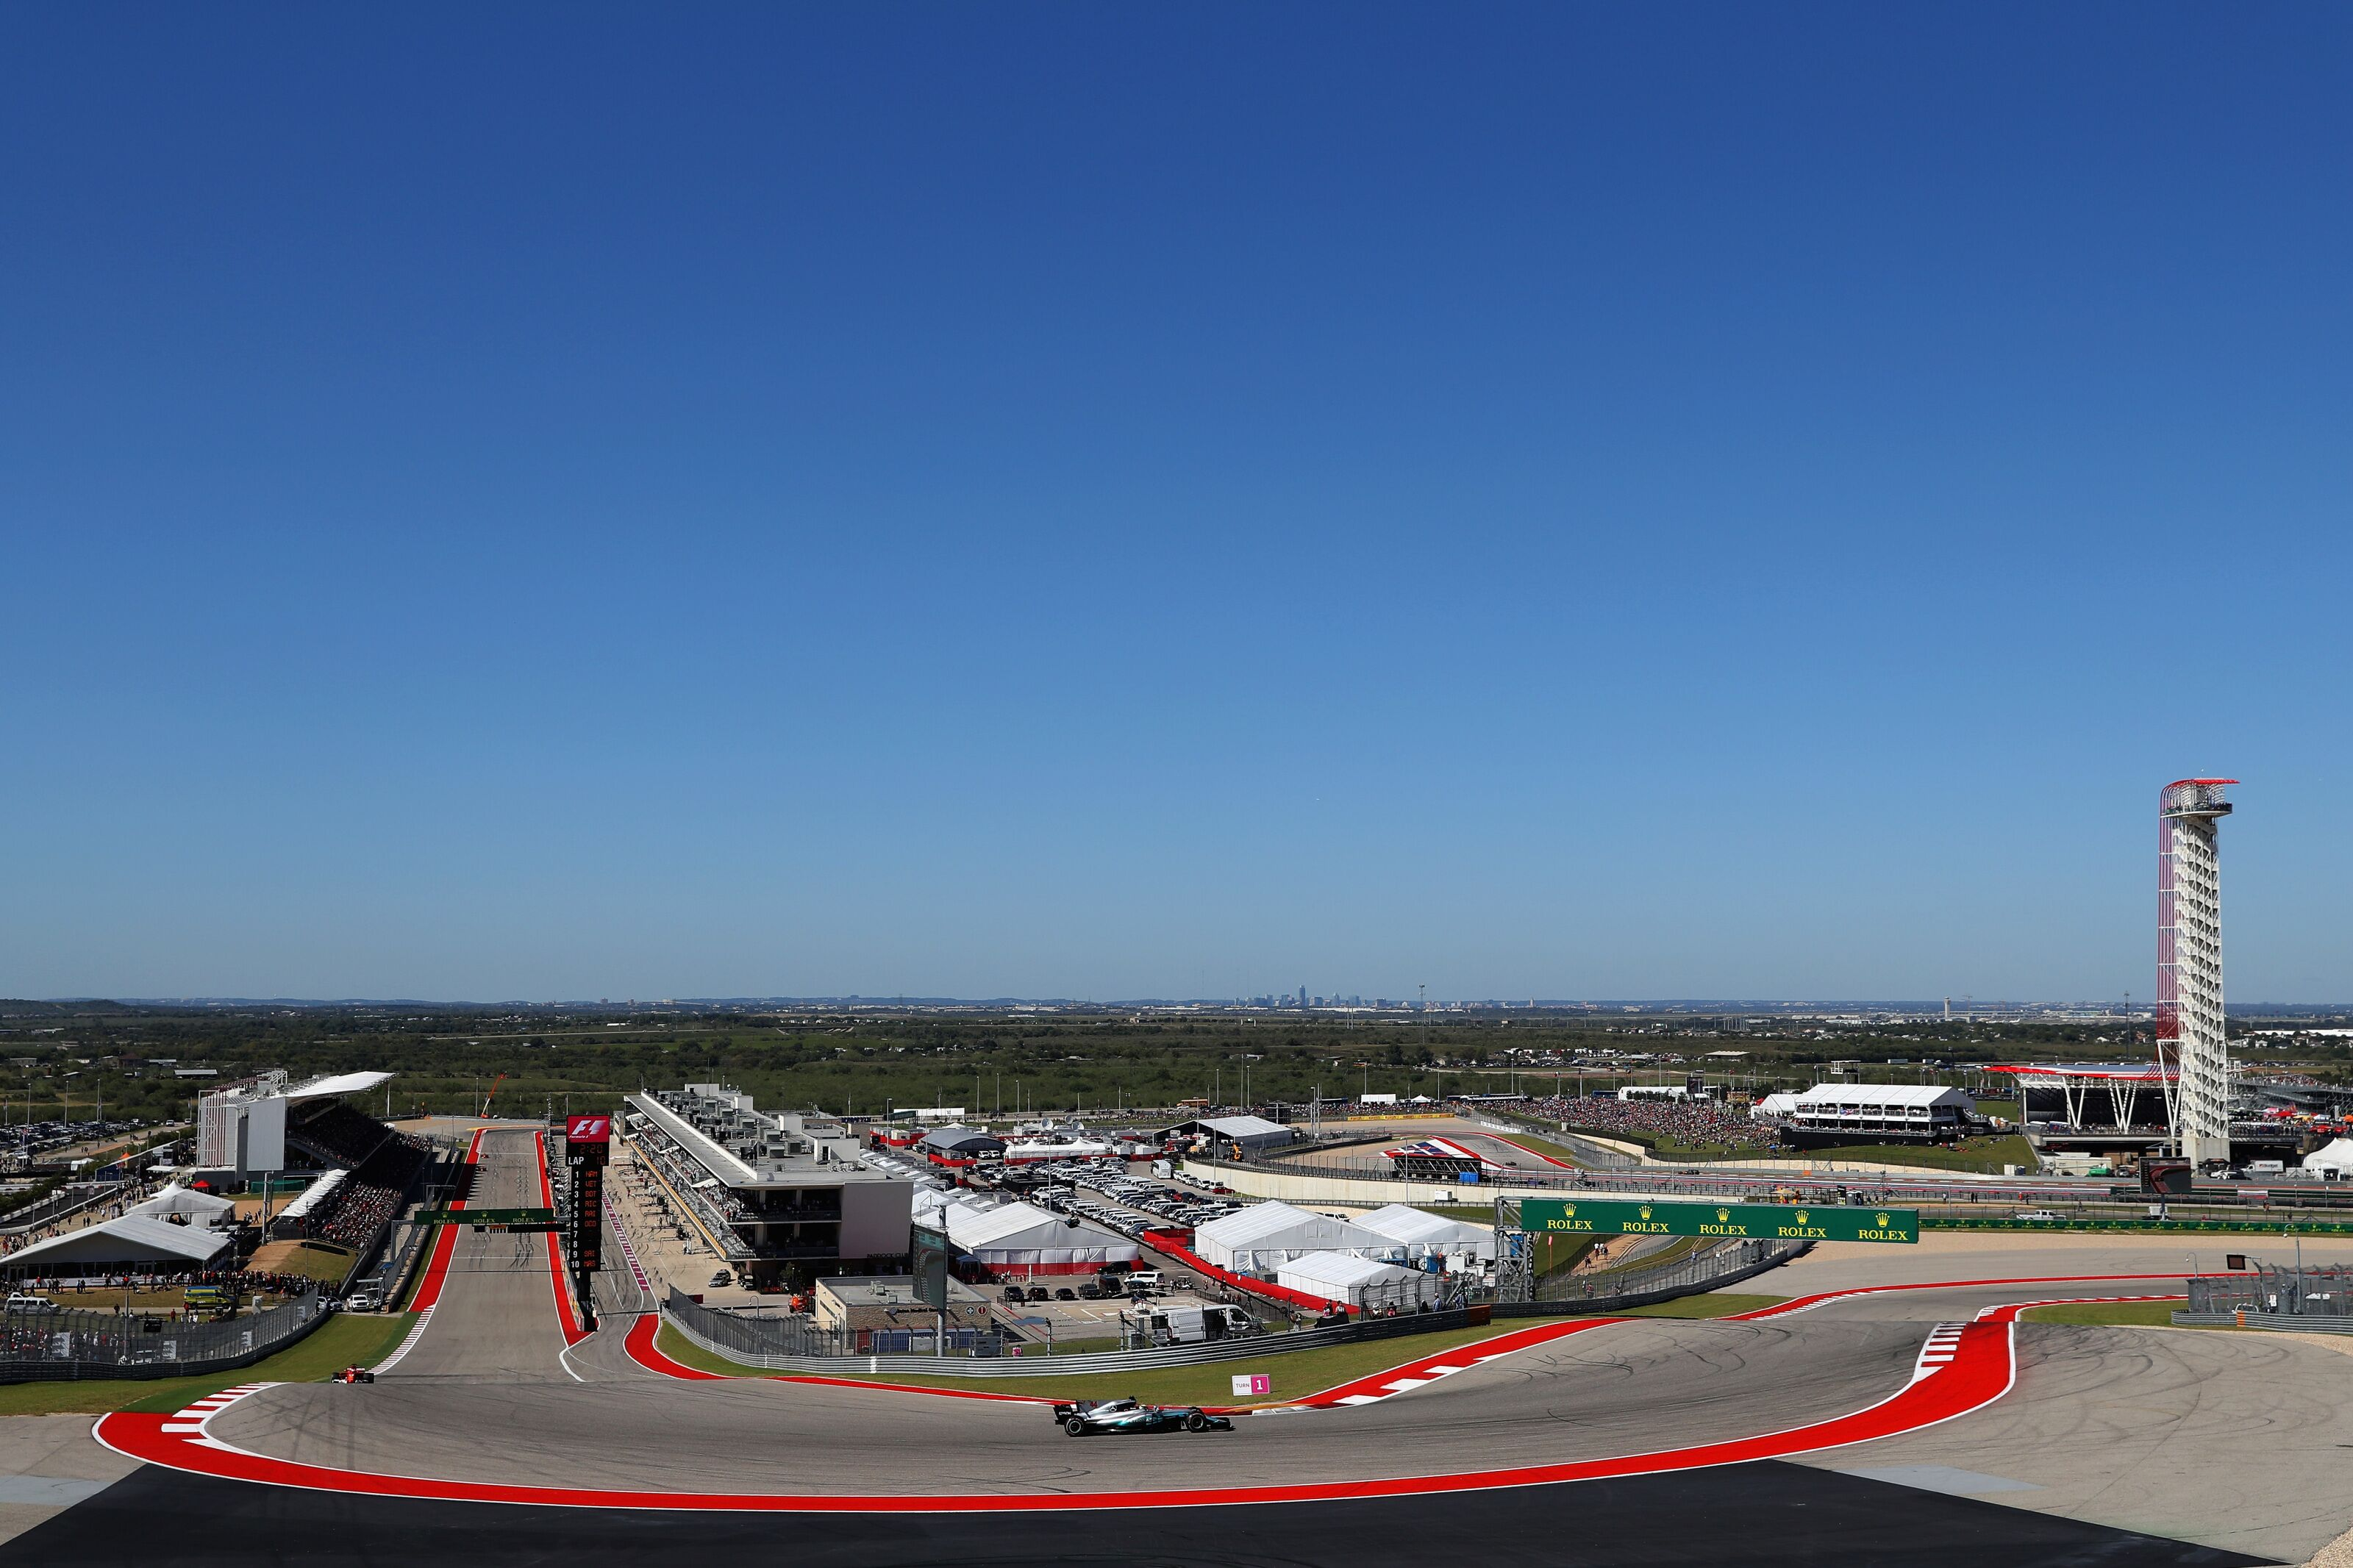 IndyCar: Circuit of the Americas added to the 2019 schedule